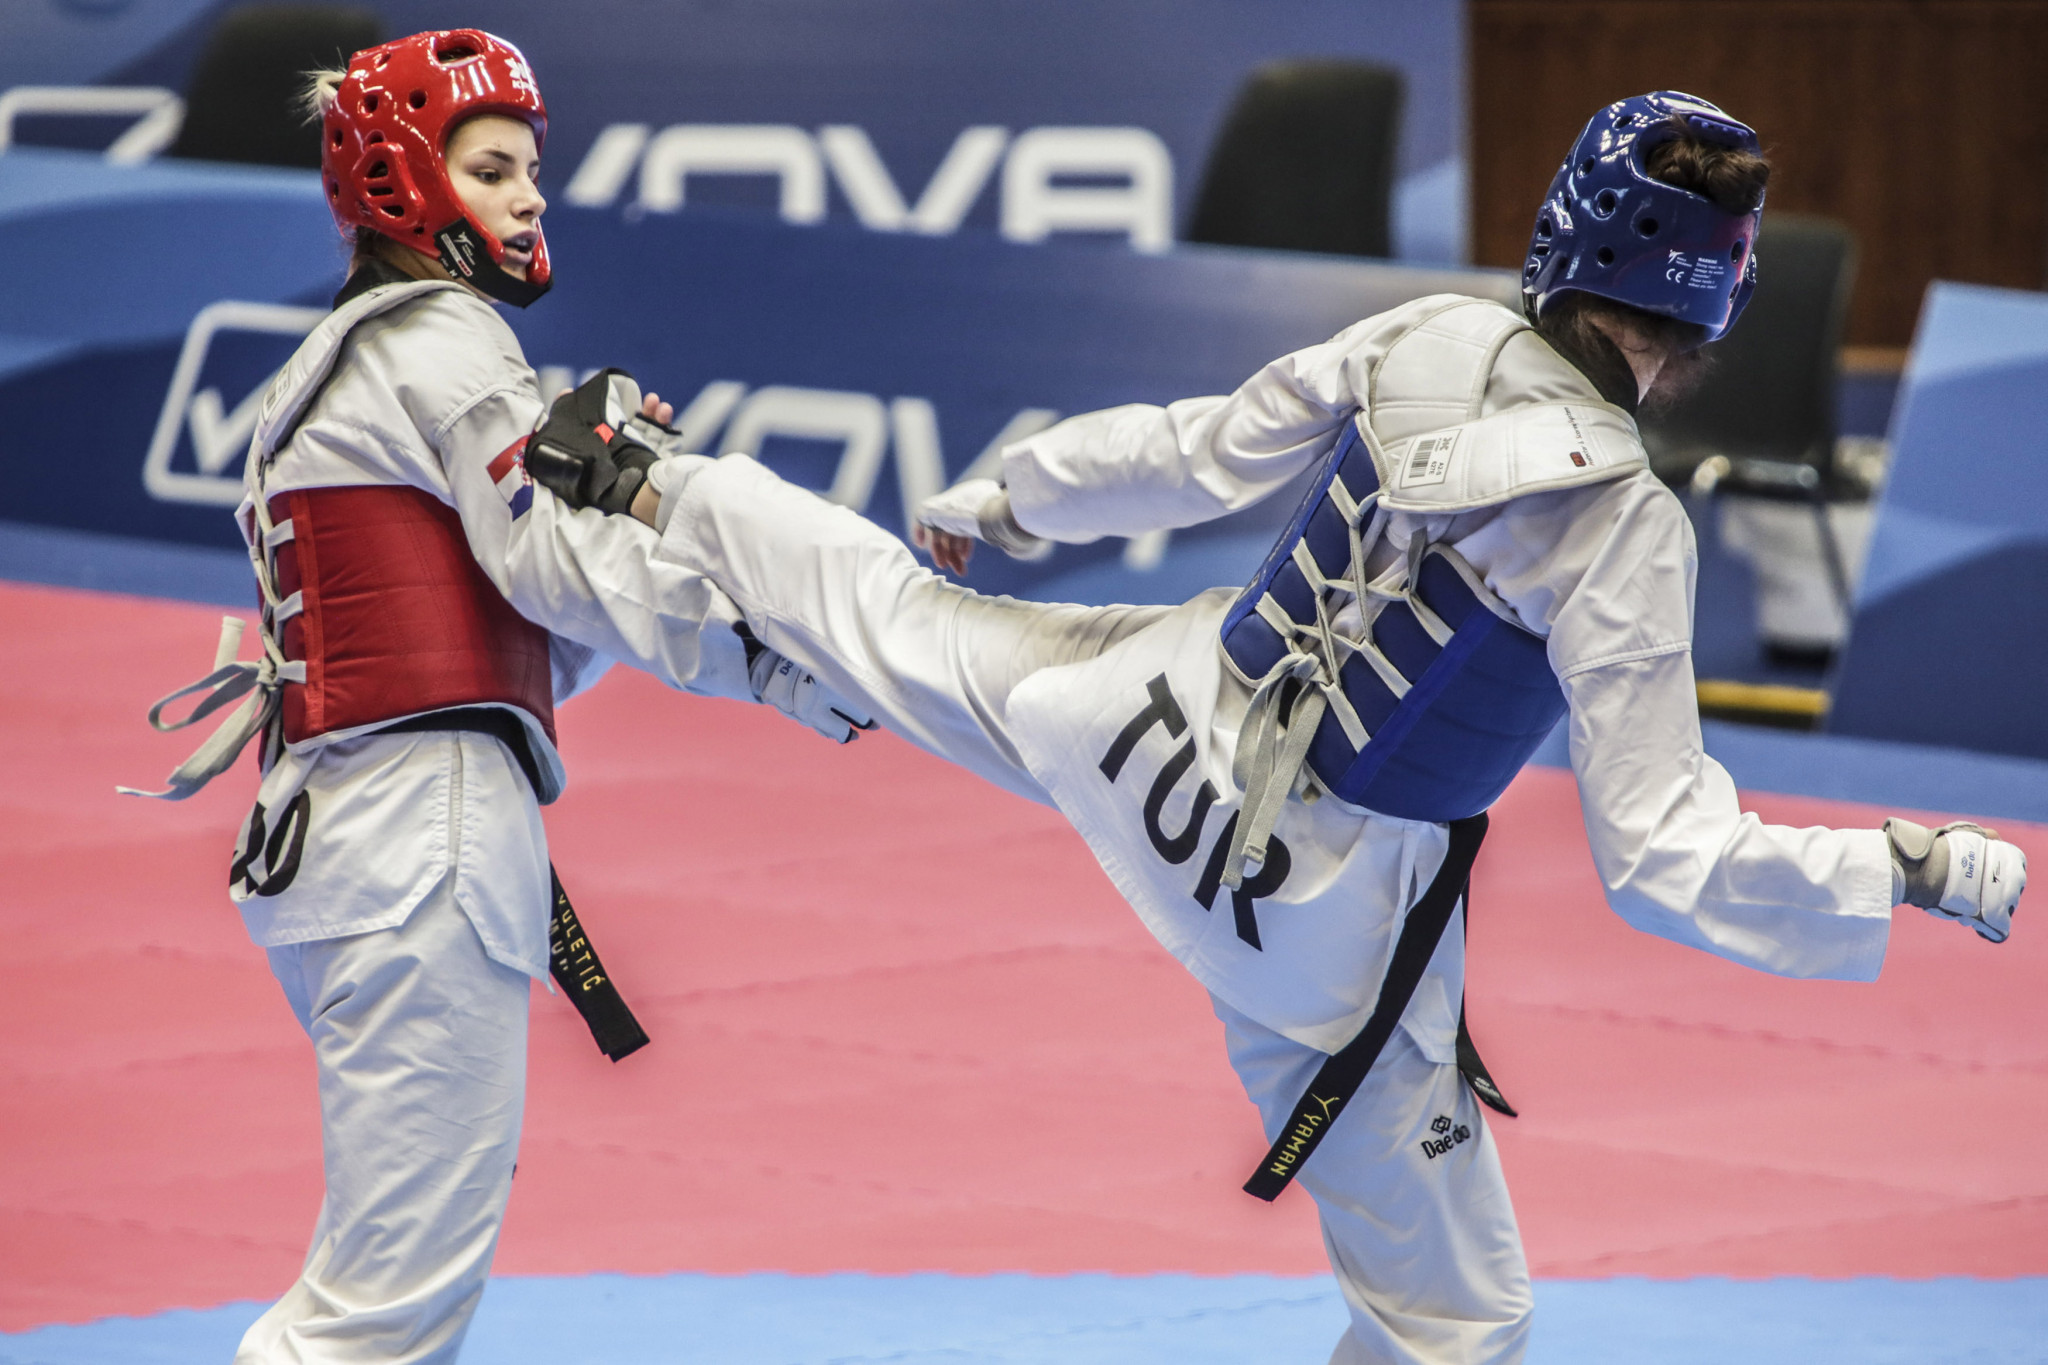 Two-times world champion Irem Yaman then triumphed in the women's under-62kg, collecting her third Universiade medal ©Naples 2019